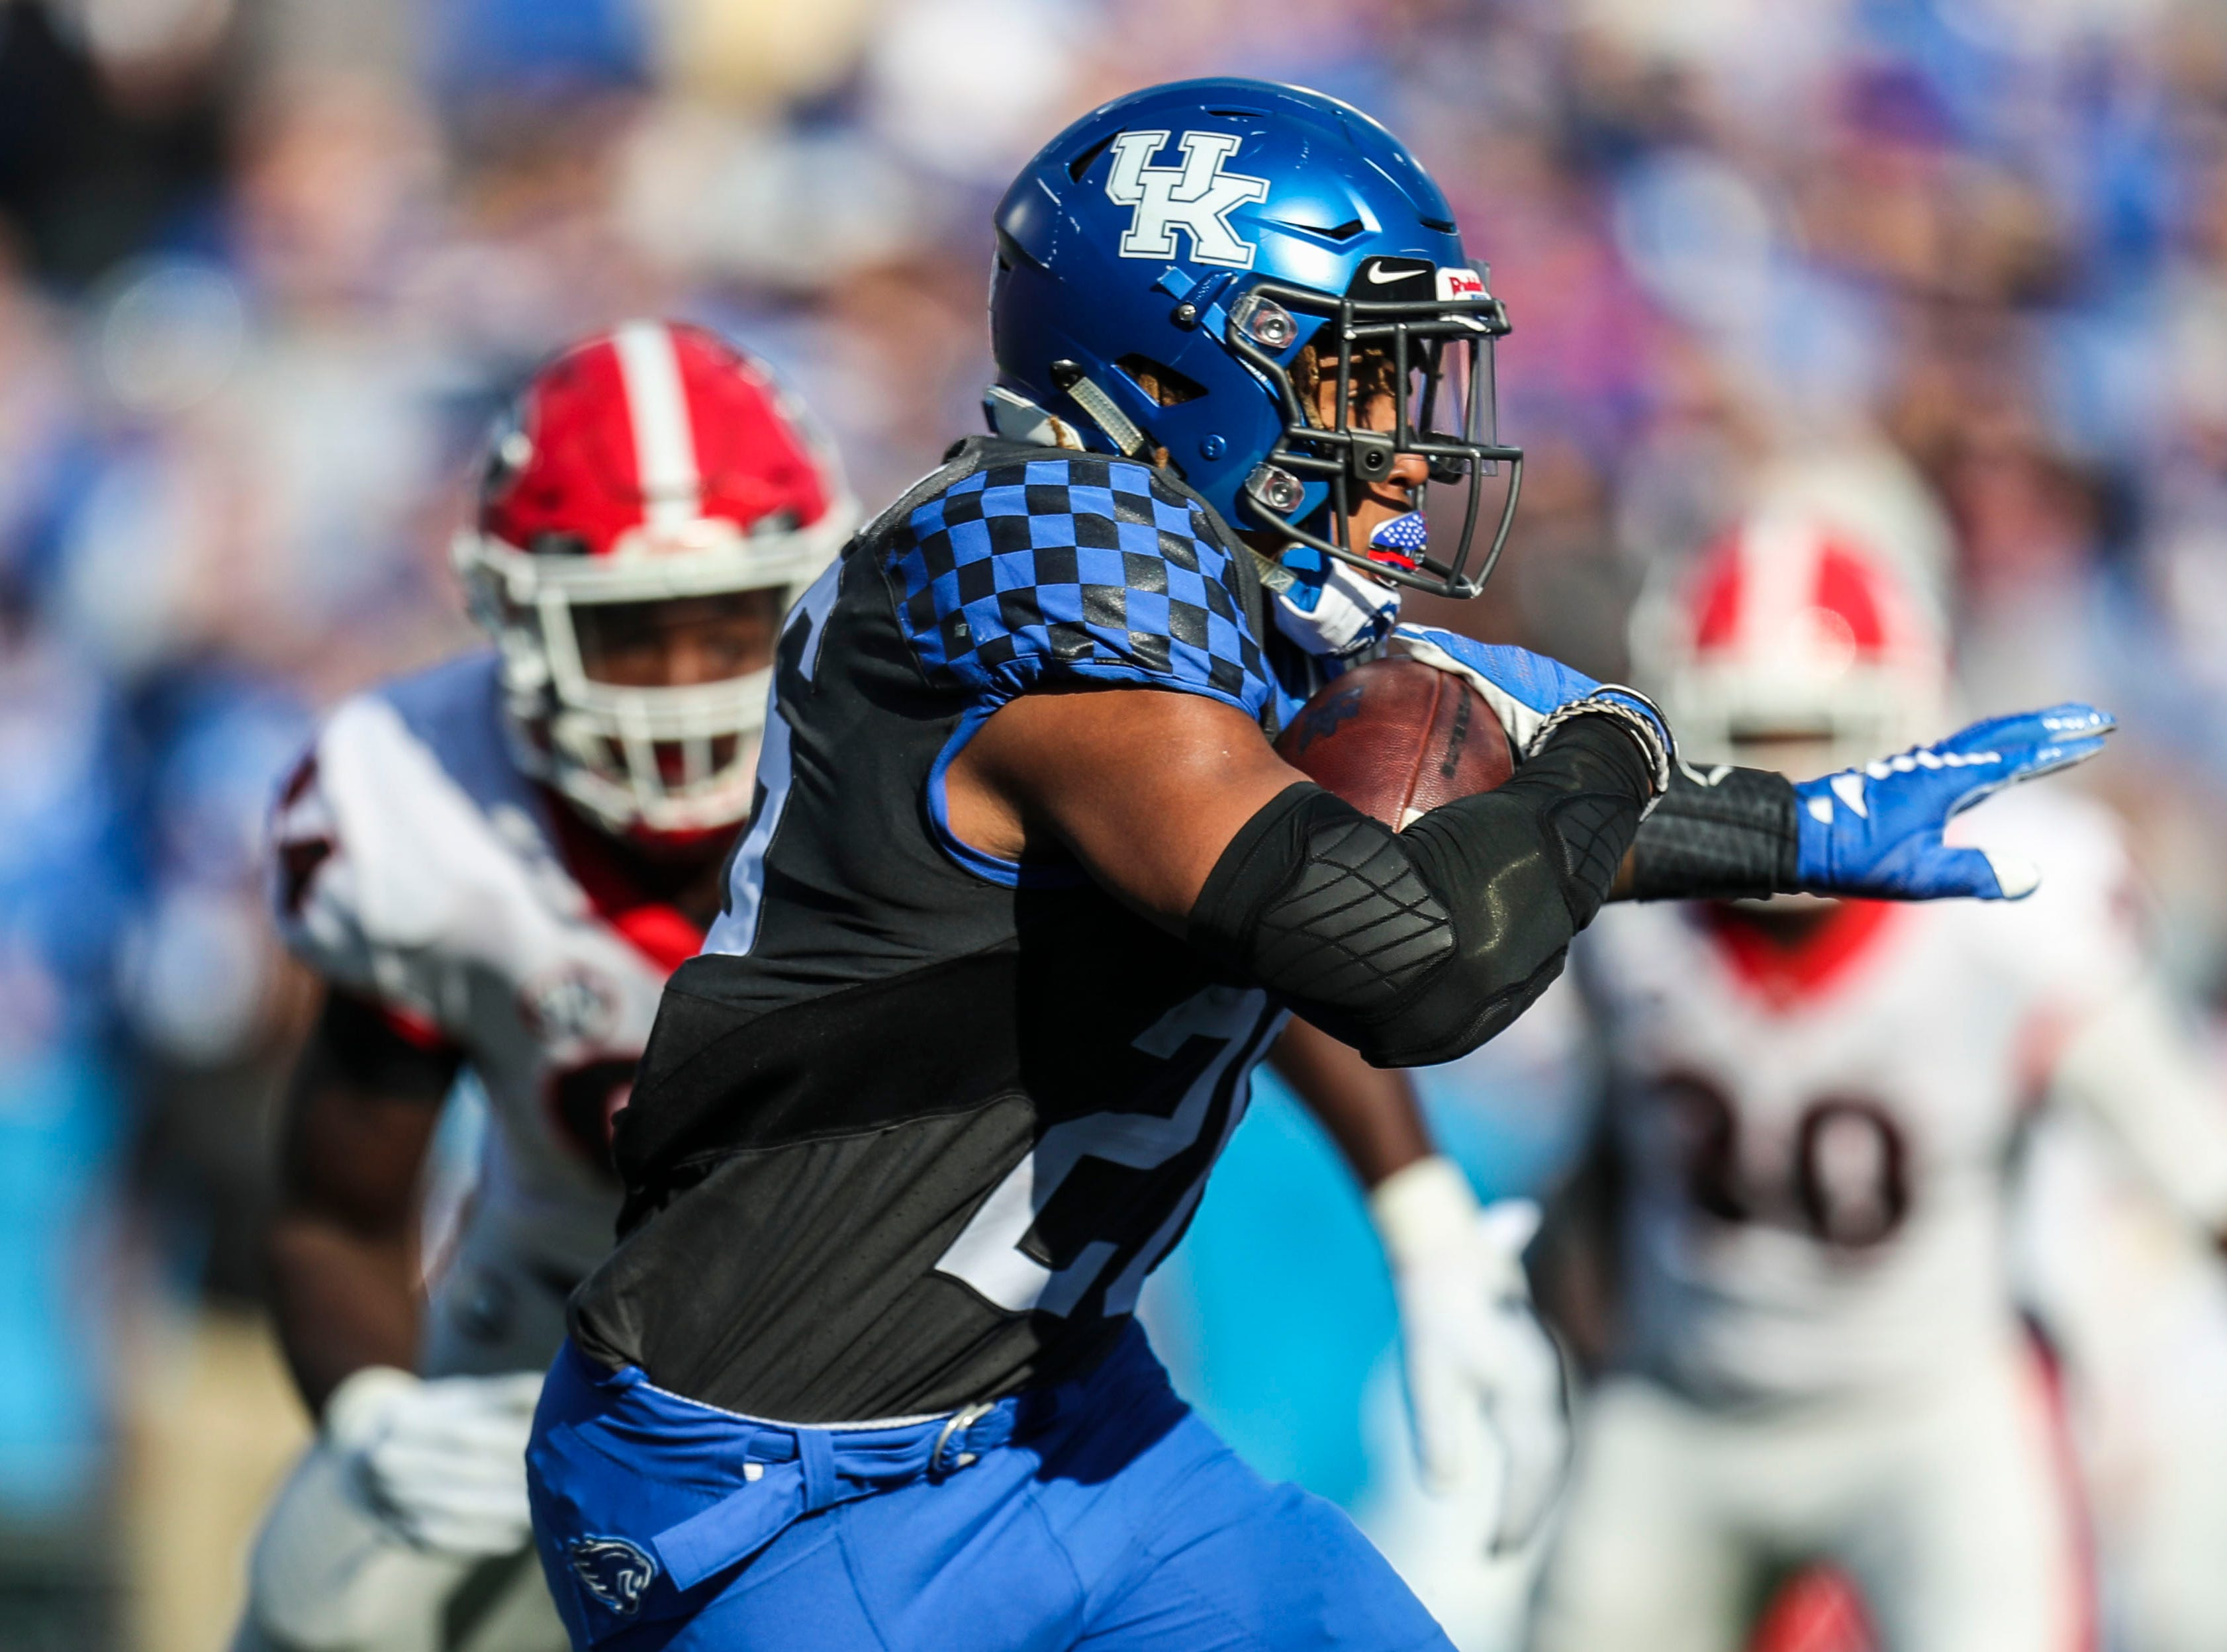 Kentucky's Benny Snell had 61 yards in the first half Saturday. Nov. 3, 2018